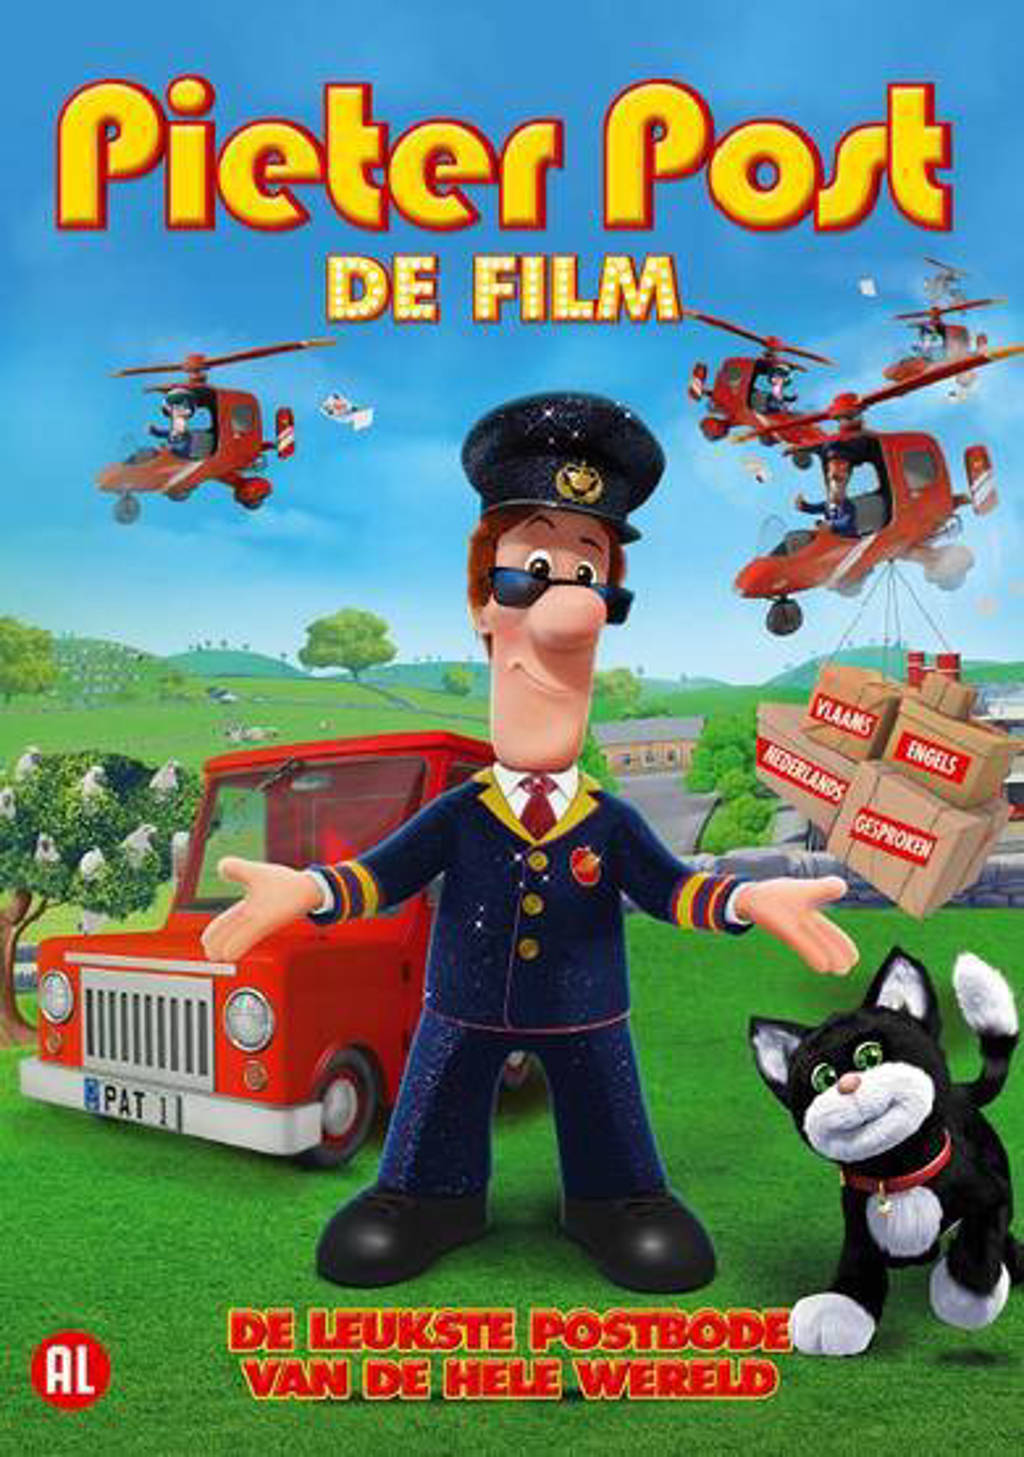 Pieter post - De film (DVD)